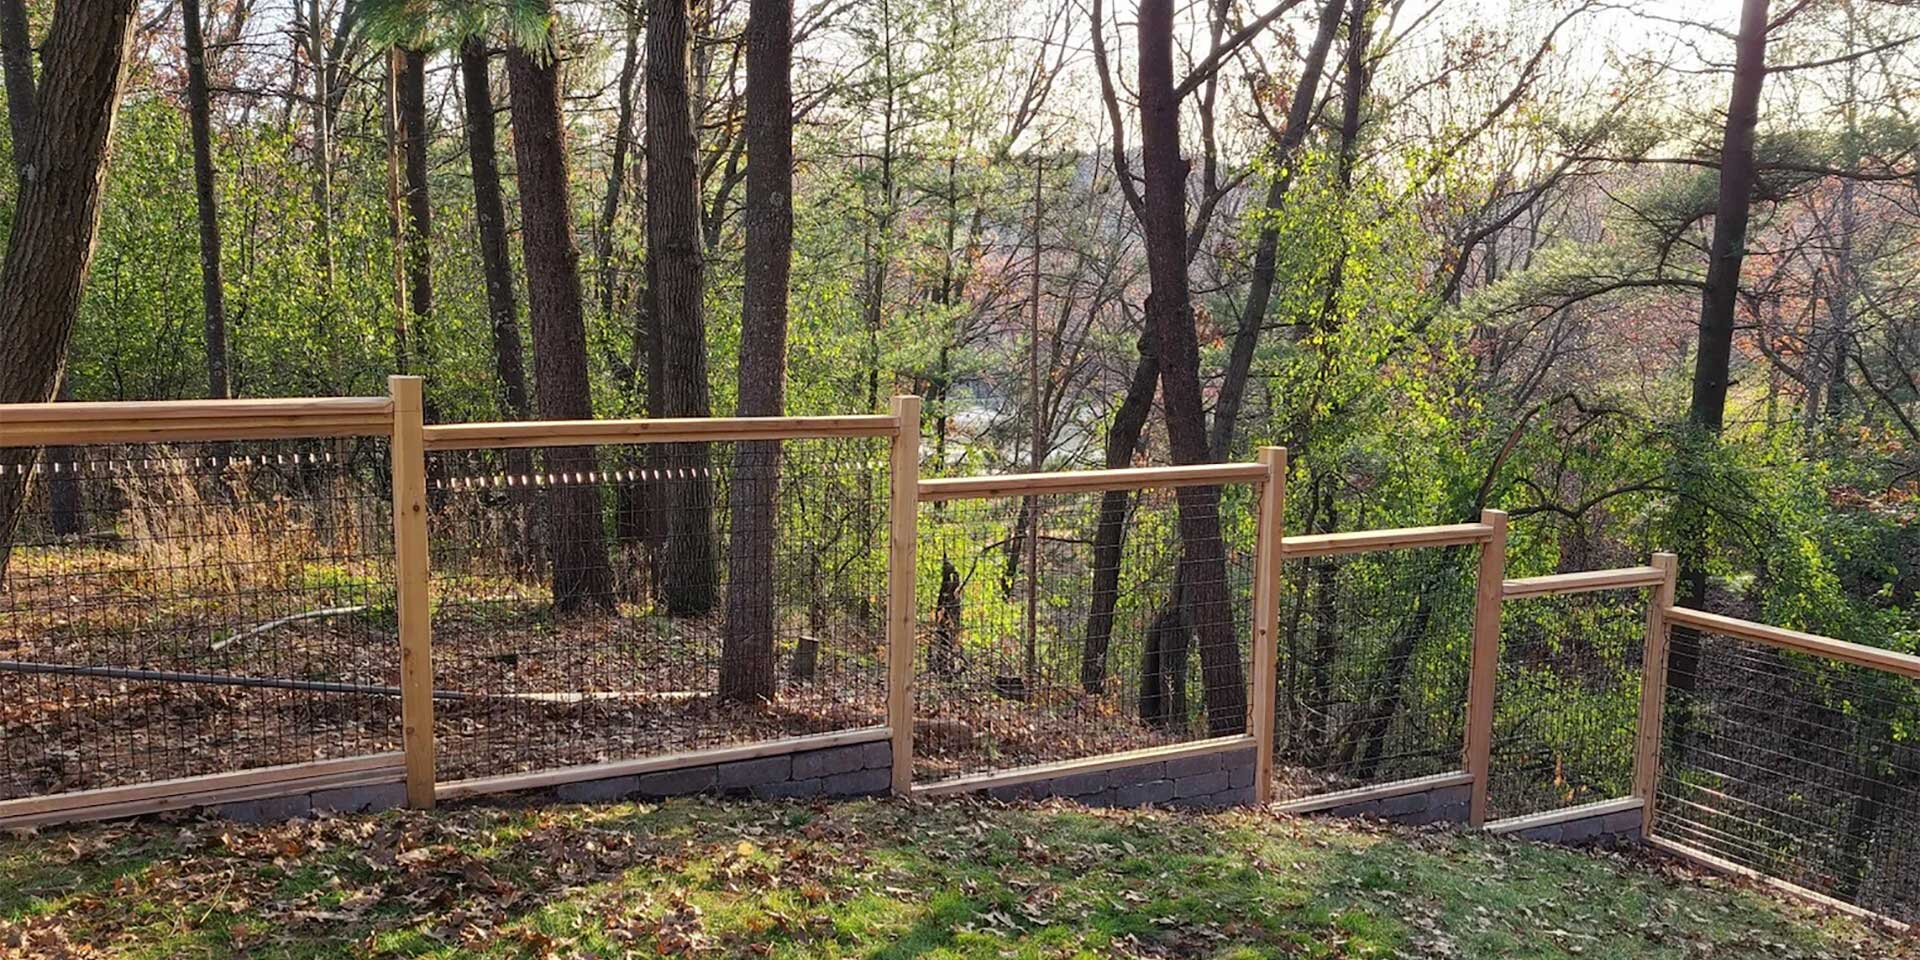 Photo of fence on a wooded hillside